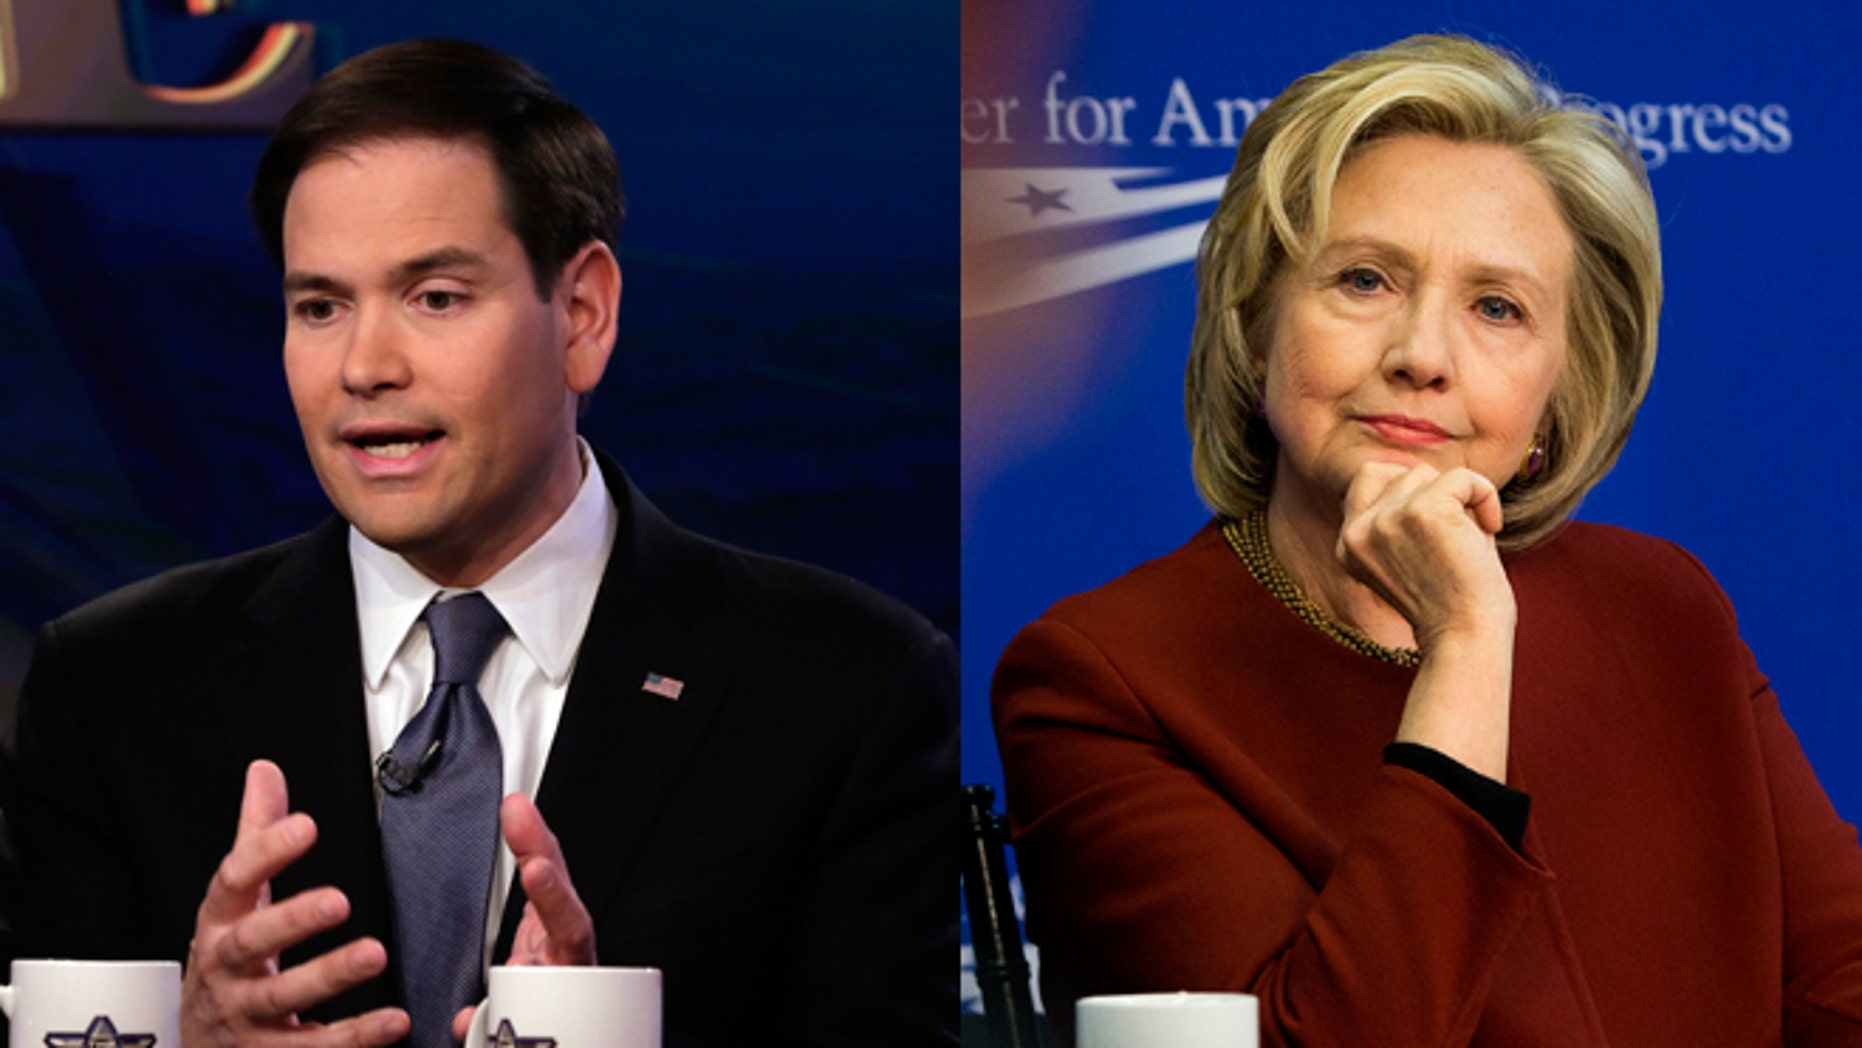 """Left: U.S. Sen. Marco Rubio, R-Fla, appears on """"The Five"""" television program, on the Fox News Channel, in New York, Monday, March 30, 2015. (AP Photo/Richard Drew) Right: Former Secretary of State Hillary Rodham Clinton listens during an event hosted by the Center for American Progress (CAP) and the America Federation of State, County and Municipal Employees (AFSCME), in Washington on March 23, 2015. A final nuclear deal with Iran would enable Clinton to claim a piece of the victory. But if negotiations fall apart or produce an agreement that lets Iran pursue a bomb, Clinton would own a piece of the failure. (AP Photo/Pablo Martinez Monsivais)"""